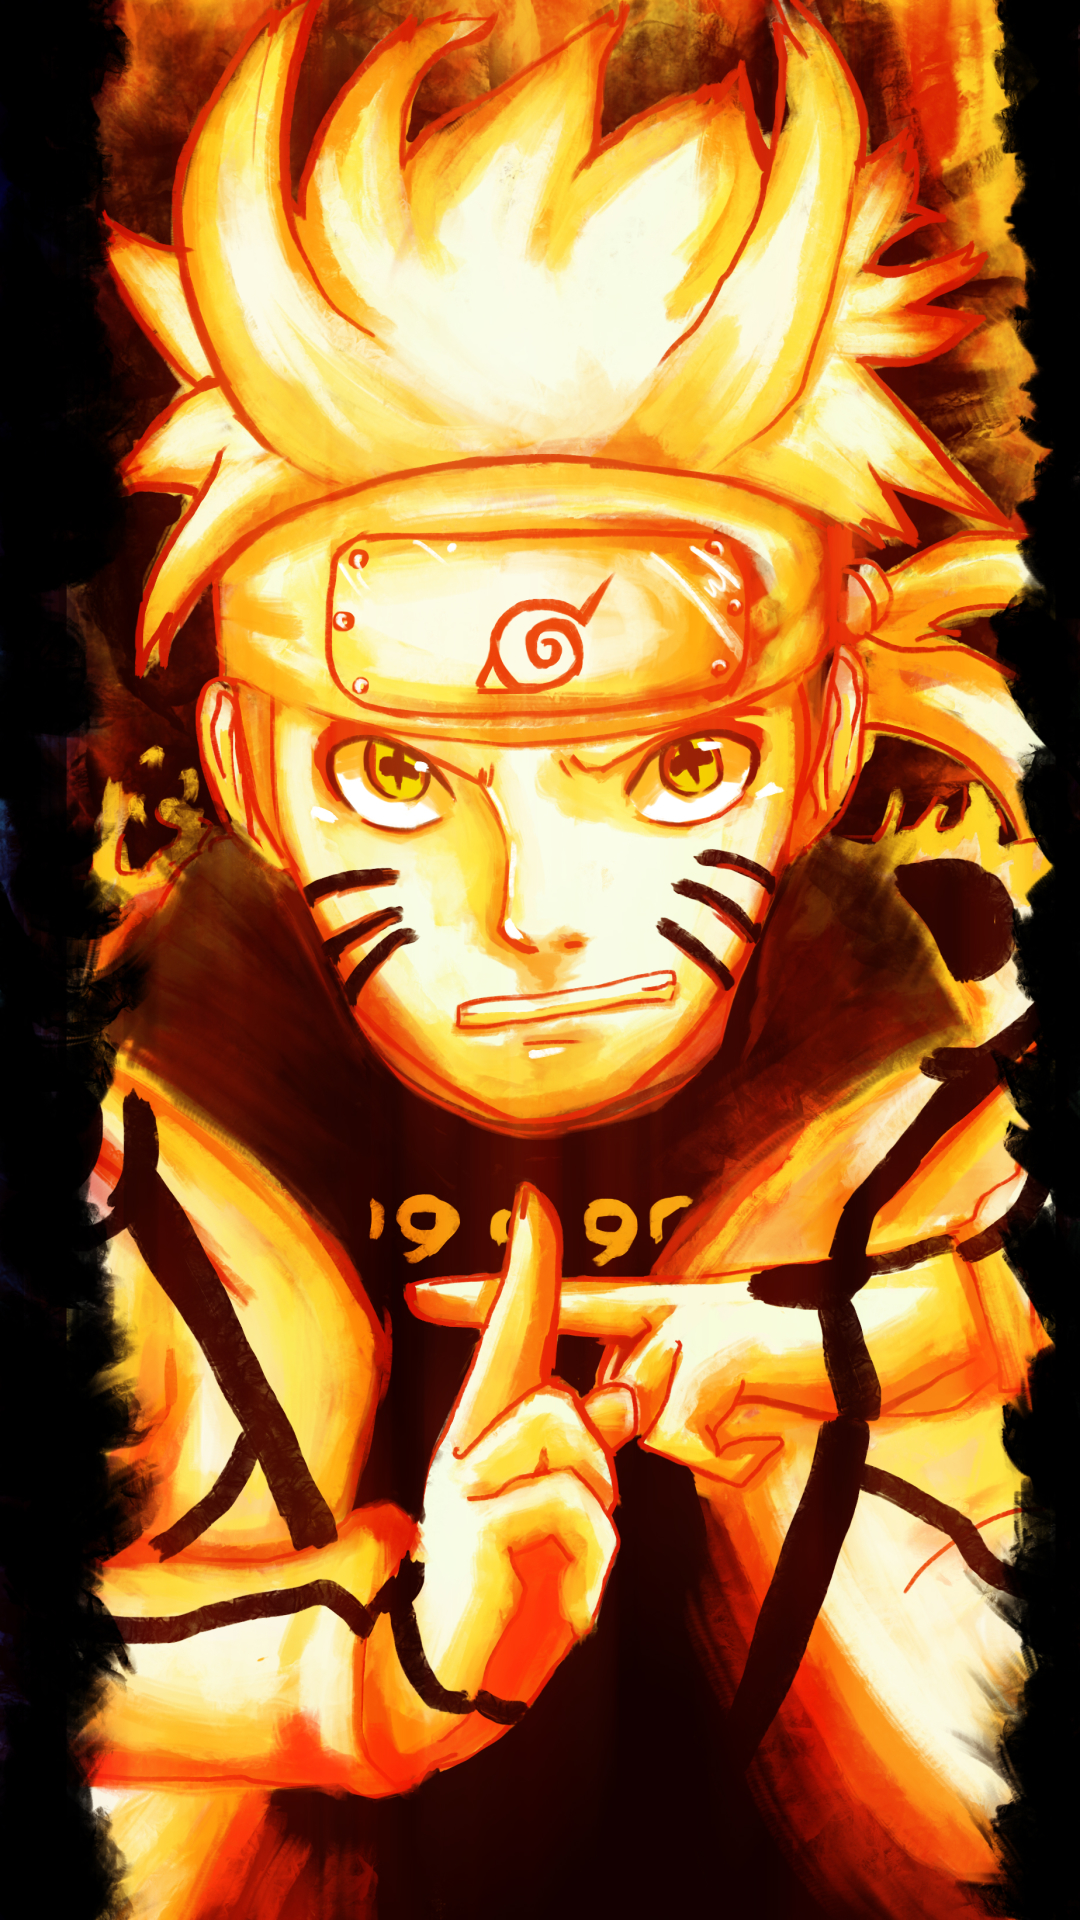 Naruto Wallpapers For Iphone   Naruto Wallpaper Iphone Download 1080x1920